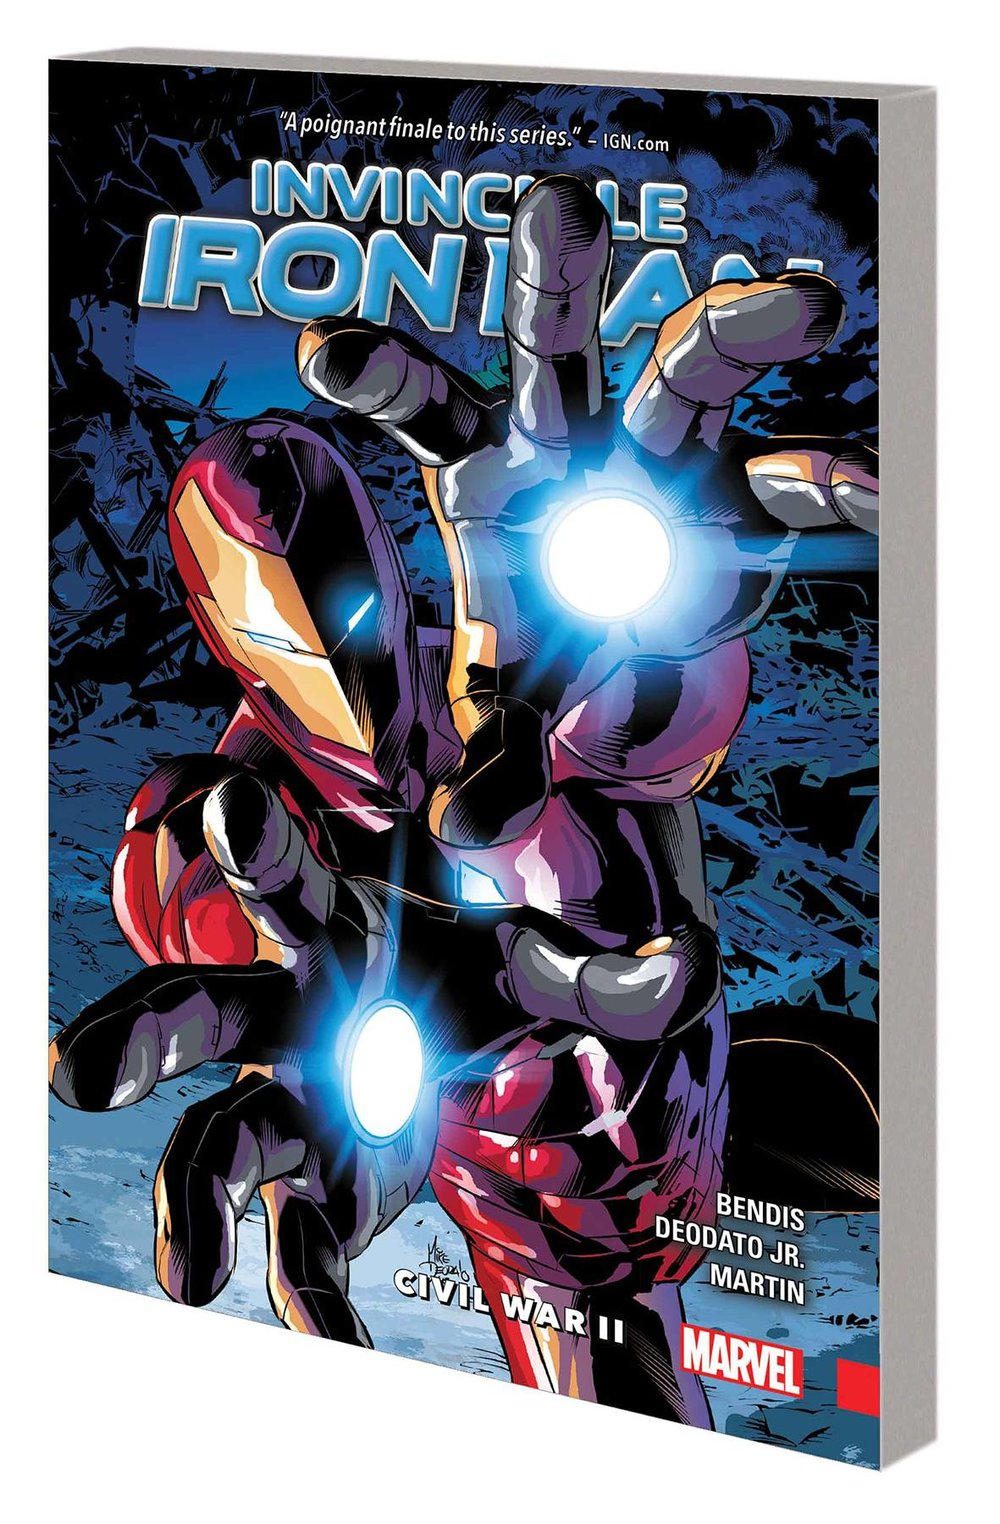 INVINCIBLE IRON MAN TP 3 CIVIL WAR II.jpg